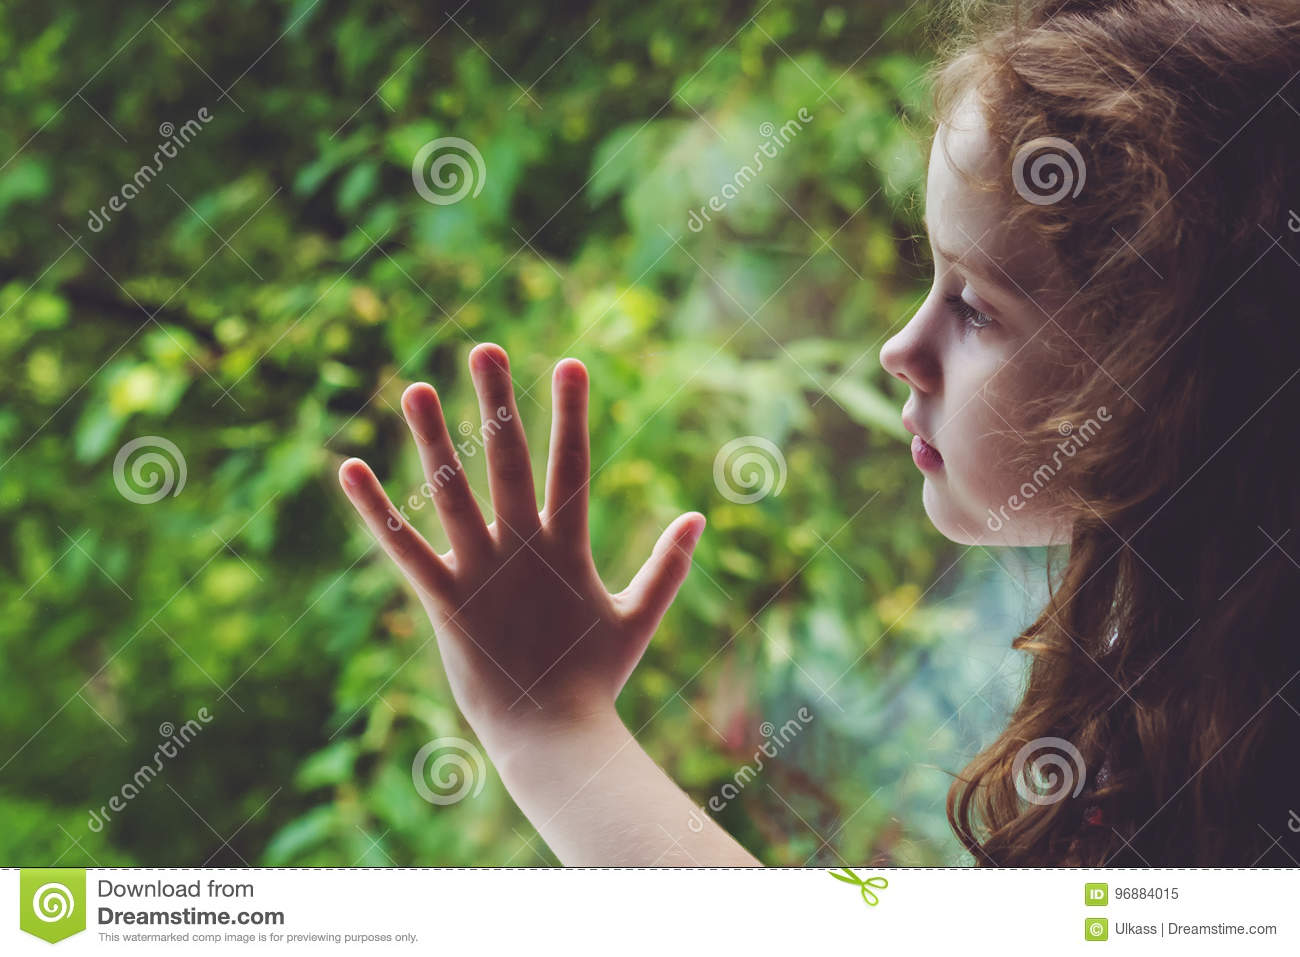 Sad Child Looking Out The Window  Stock Image - Image of